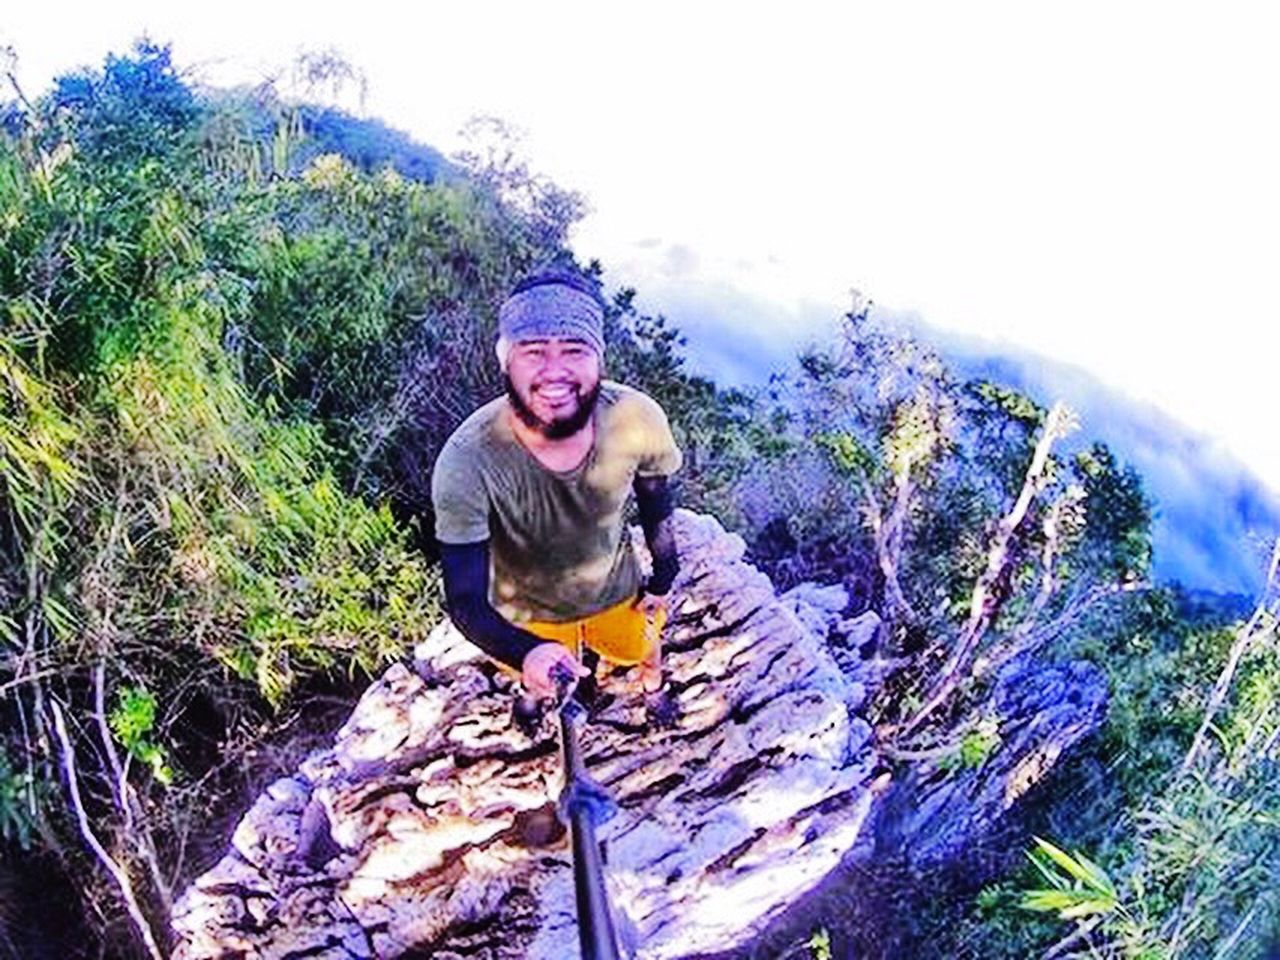 Hike Thegrind Itchyfeet Goprophotography Travelph People And Places